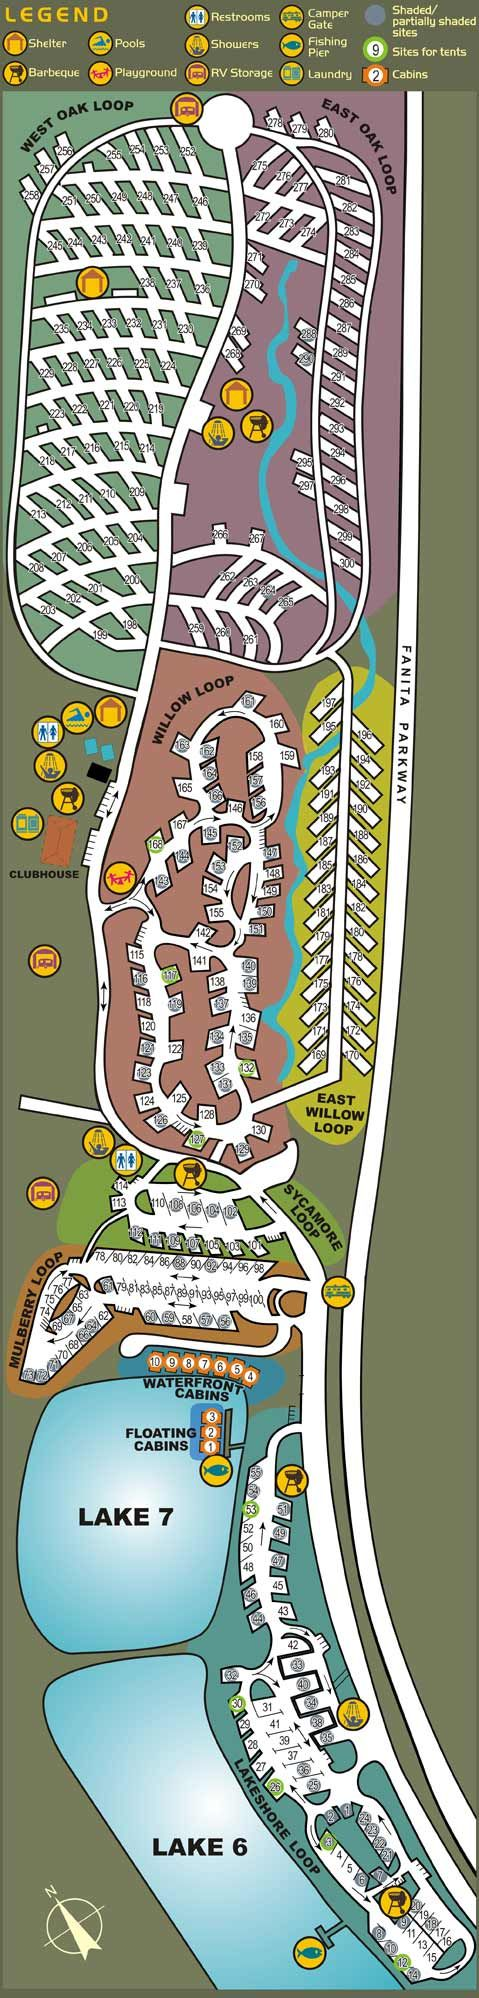 Santee Lakes Campground Site Map Summer Bucket List 2013